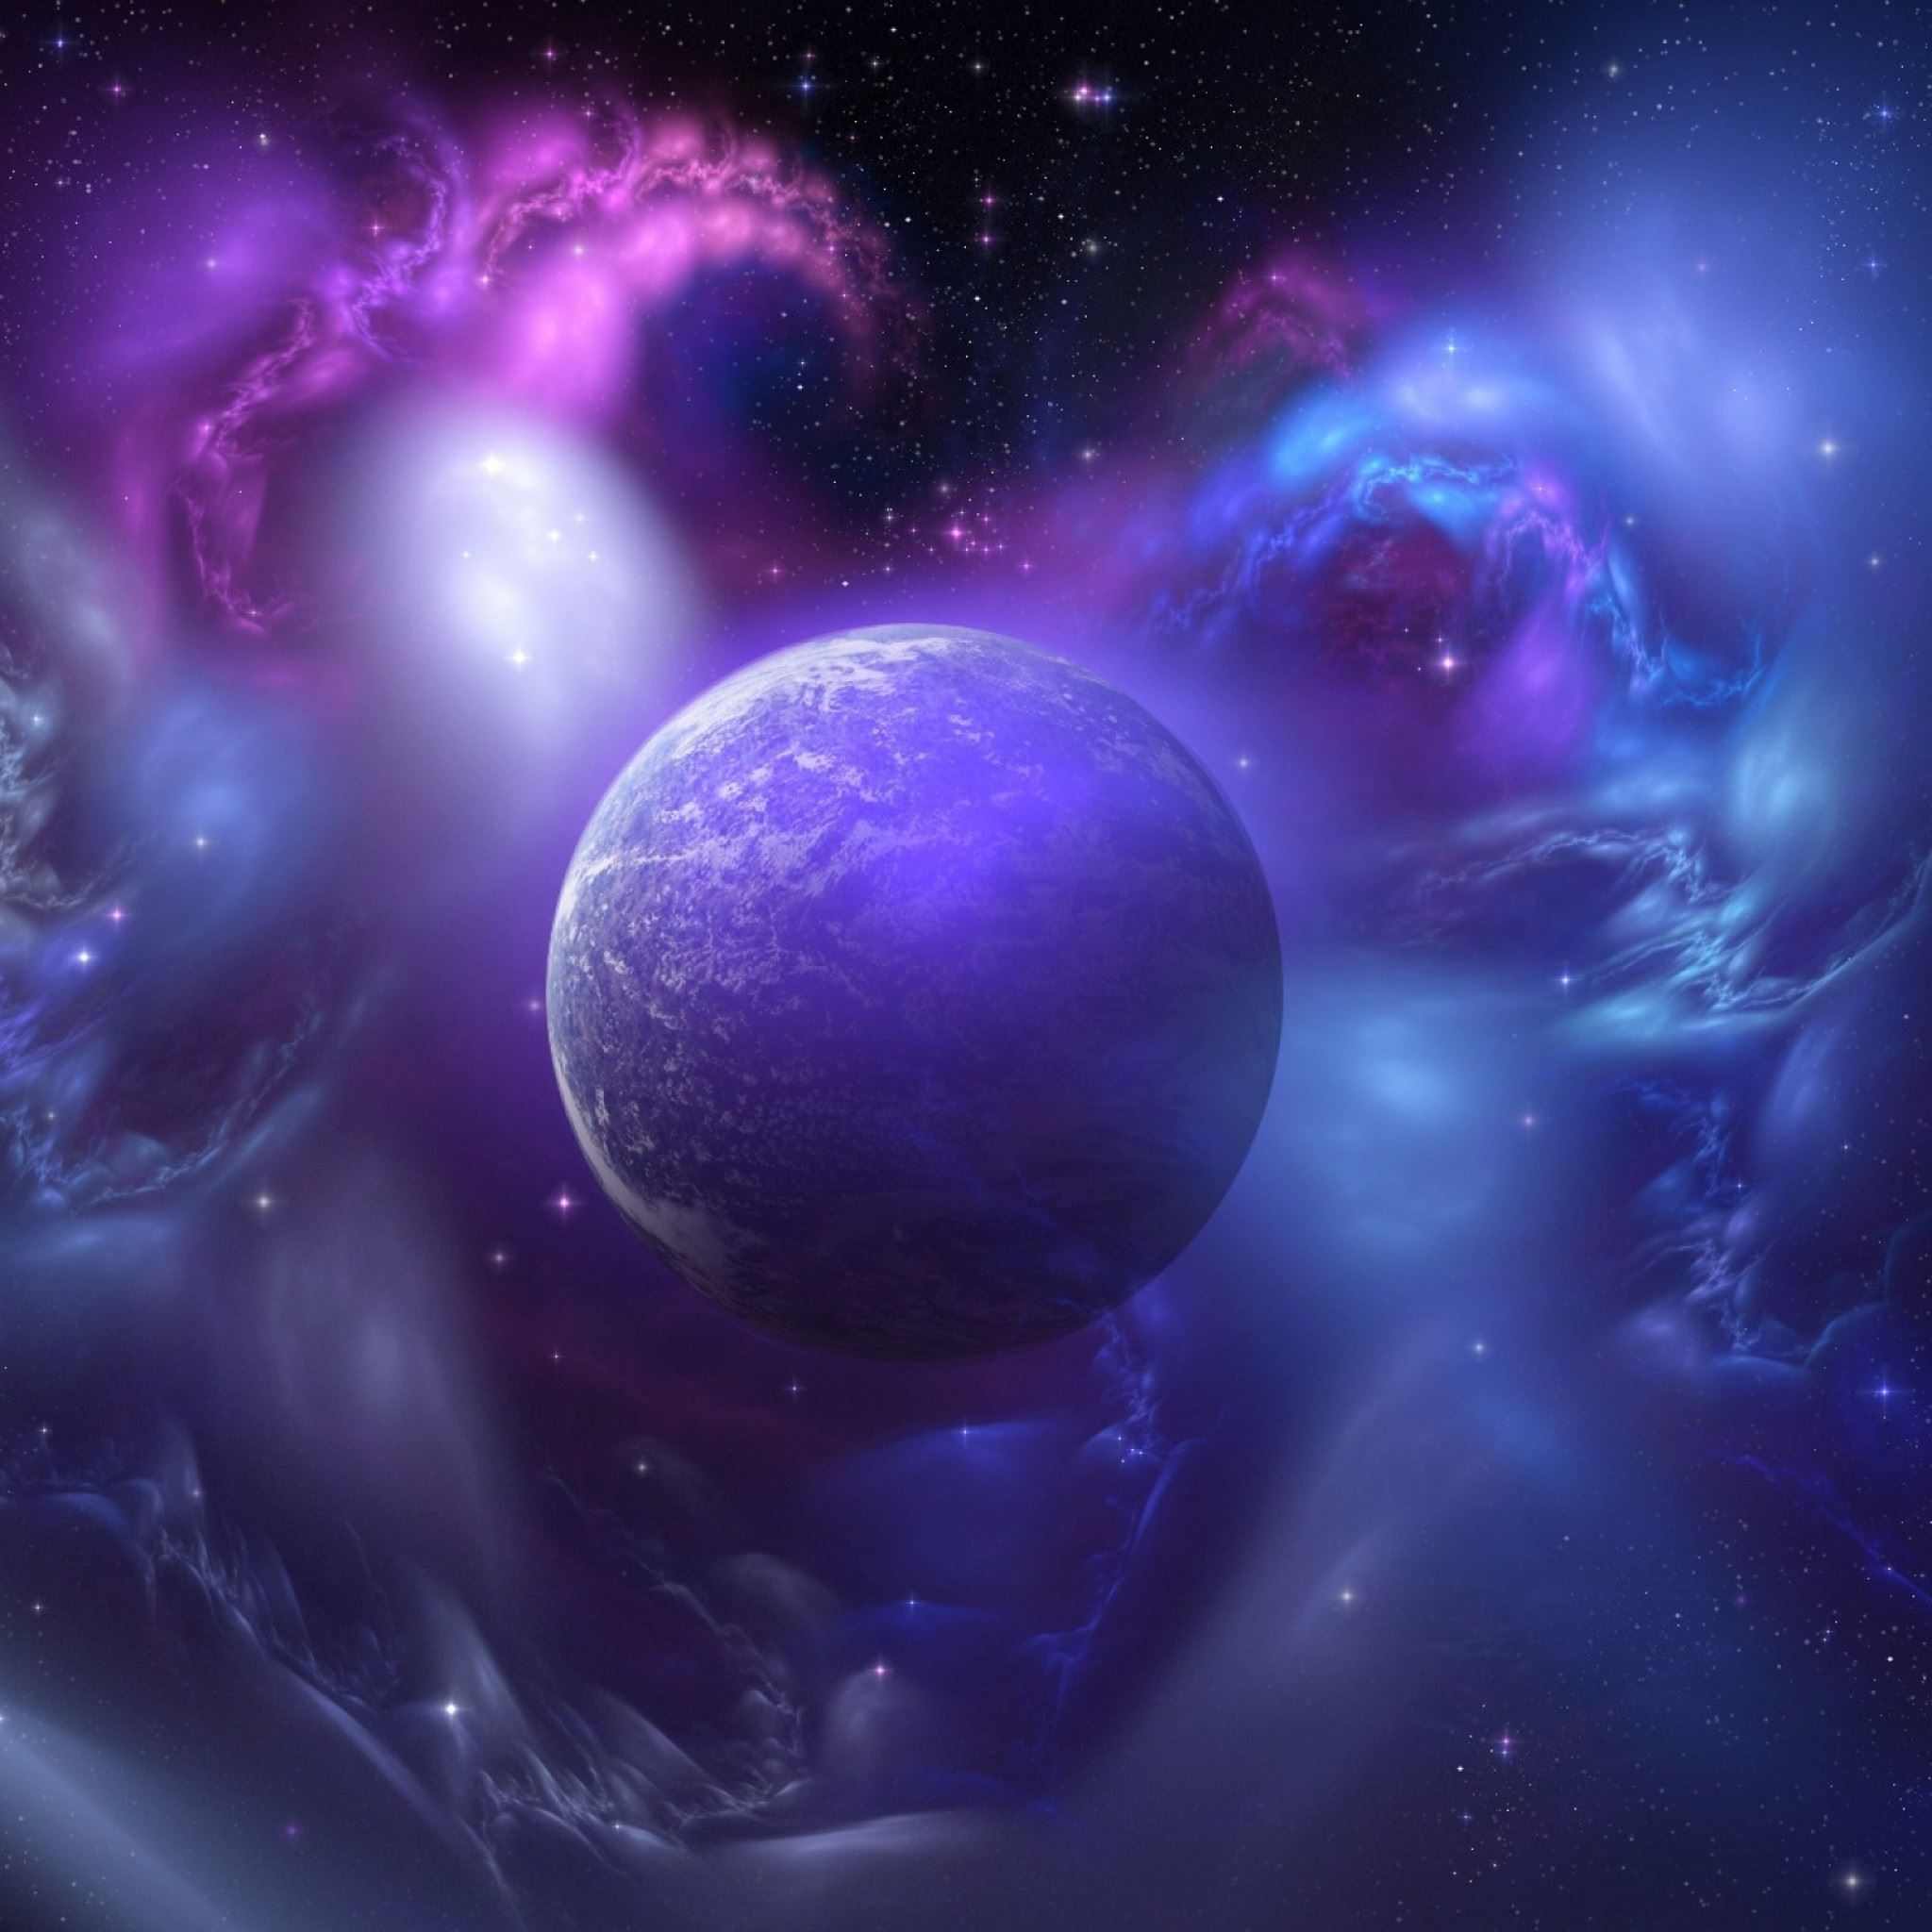 R Wallpaper Download: Space Collection IPad Air Wallpaper Download